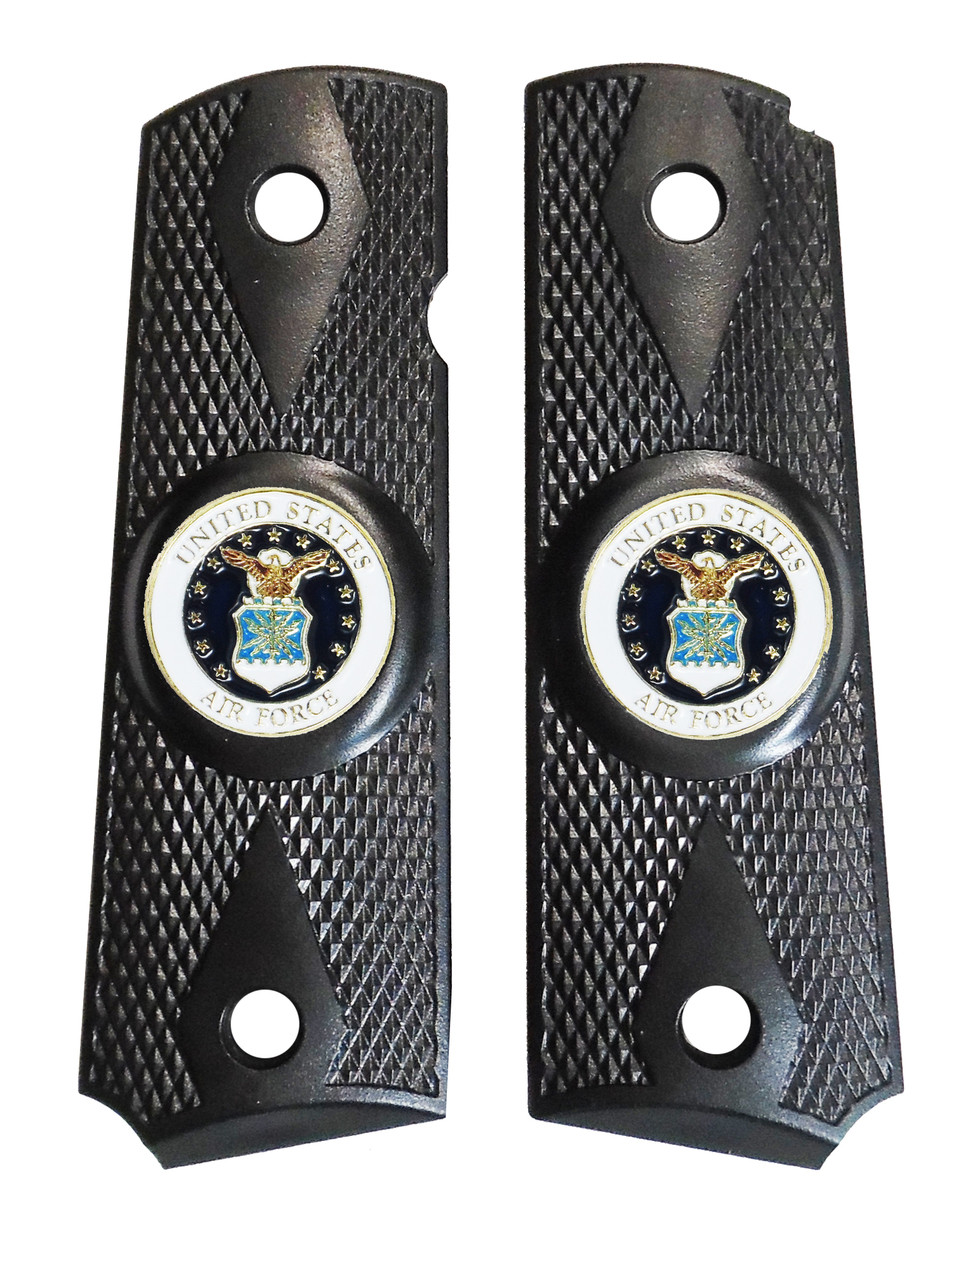 1911 Government Model US Air Force Emblems Set In Ebony Black Polymer Grips G44